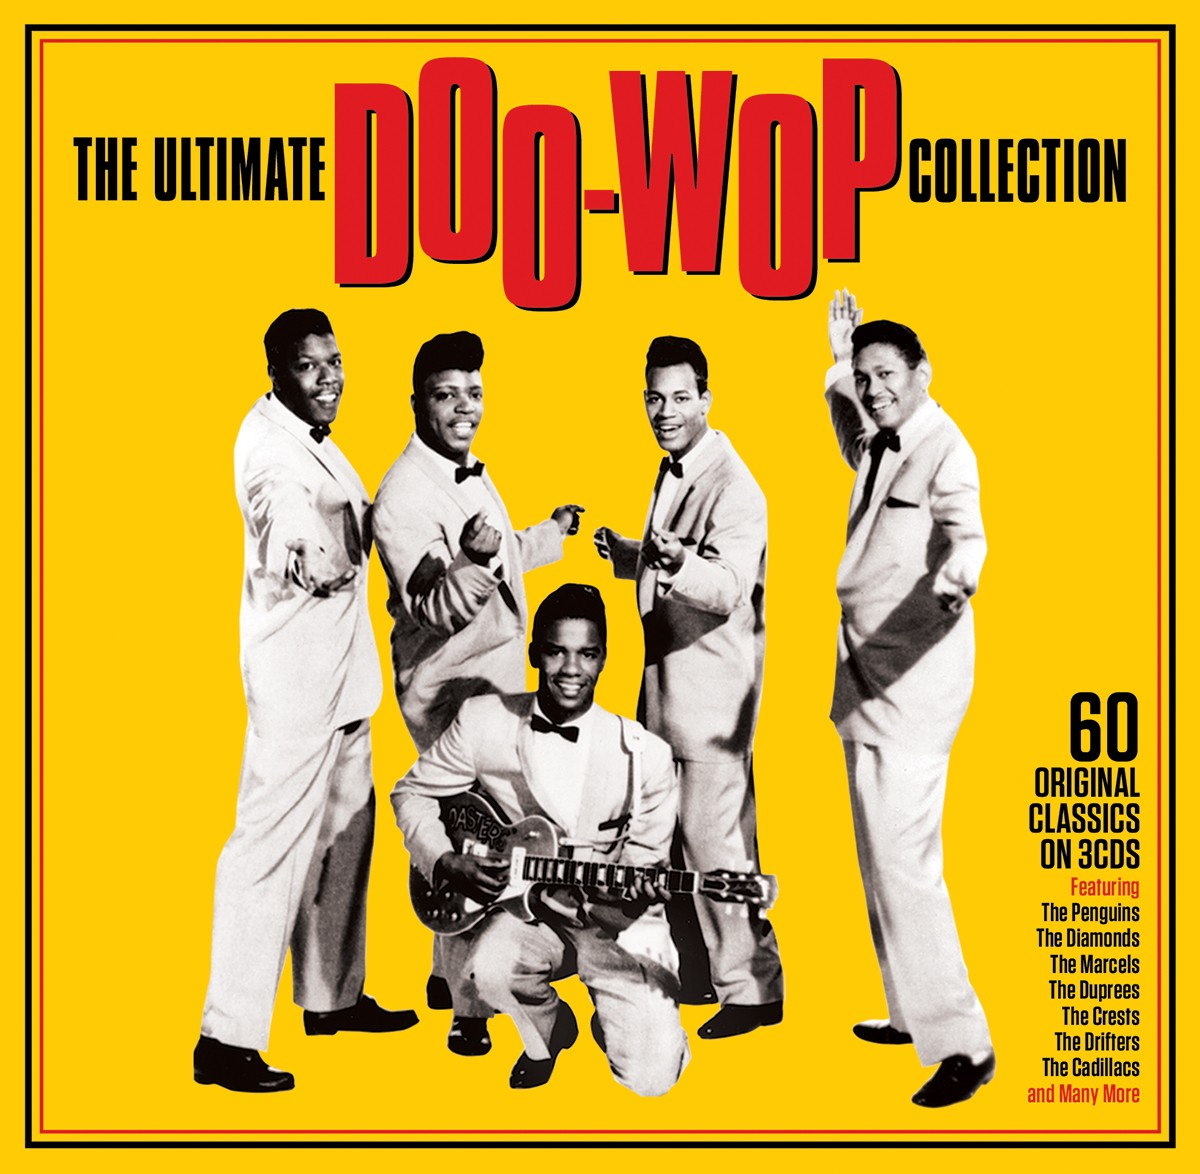 ULTIMATE DOO-WOP COLLECTION: (2 CDS) - Penguins, Diamonds, Marcels, Duprees, Crests, Drifters, Dell-Vikings...